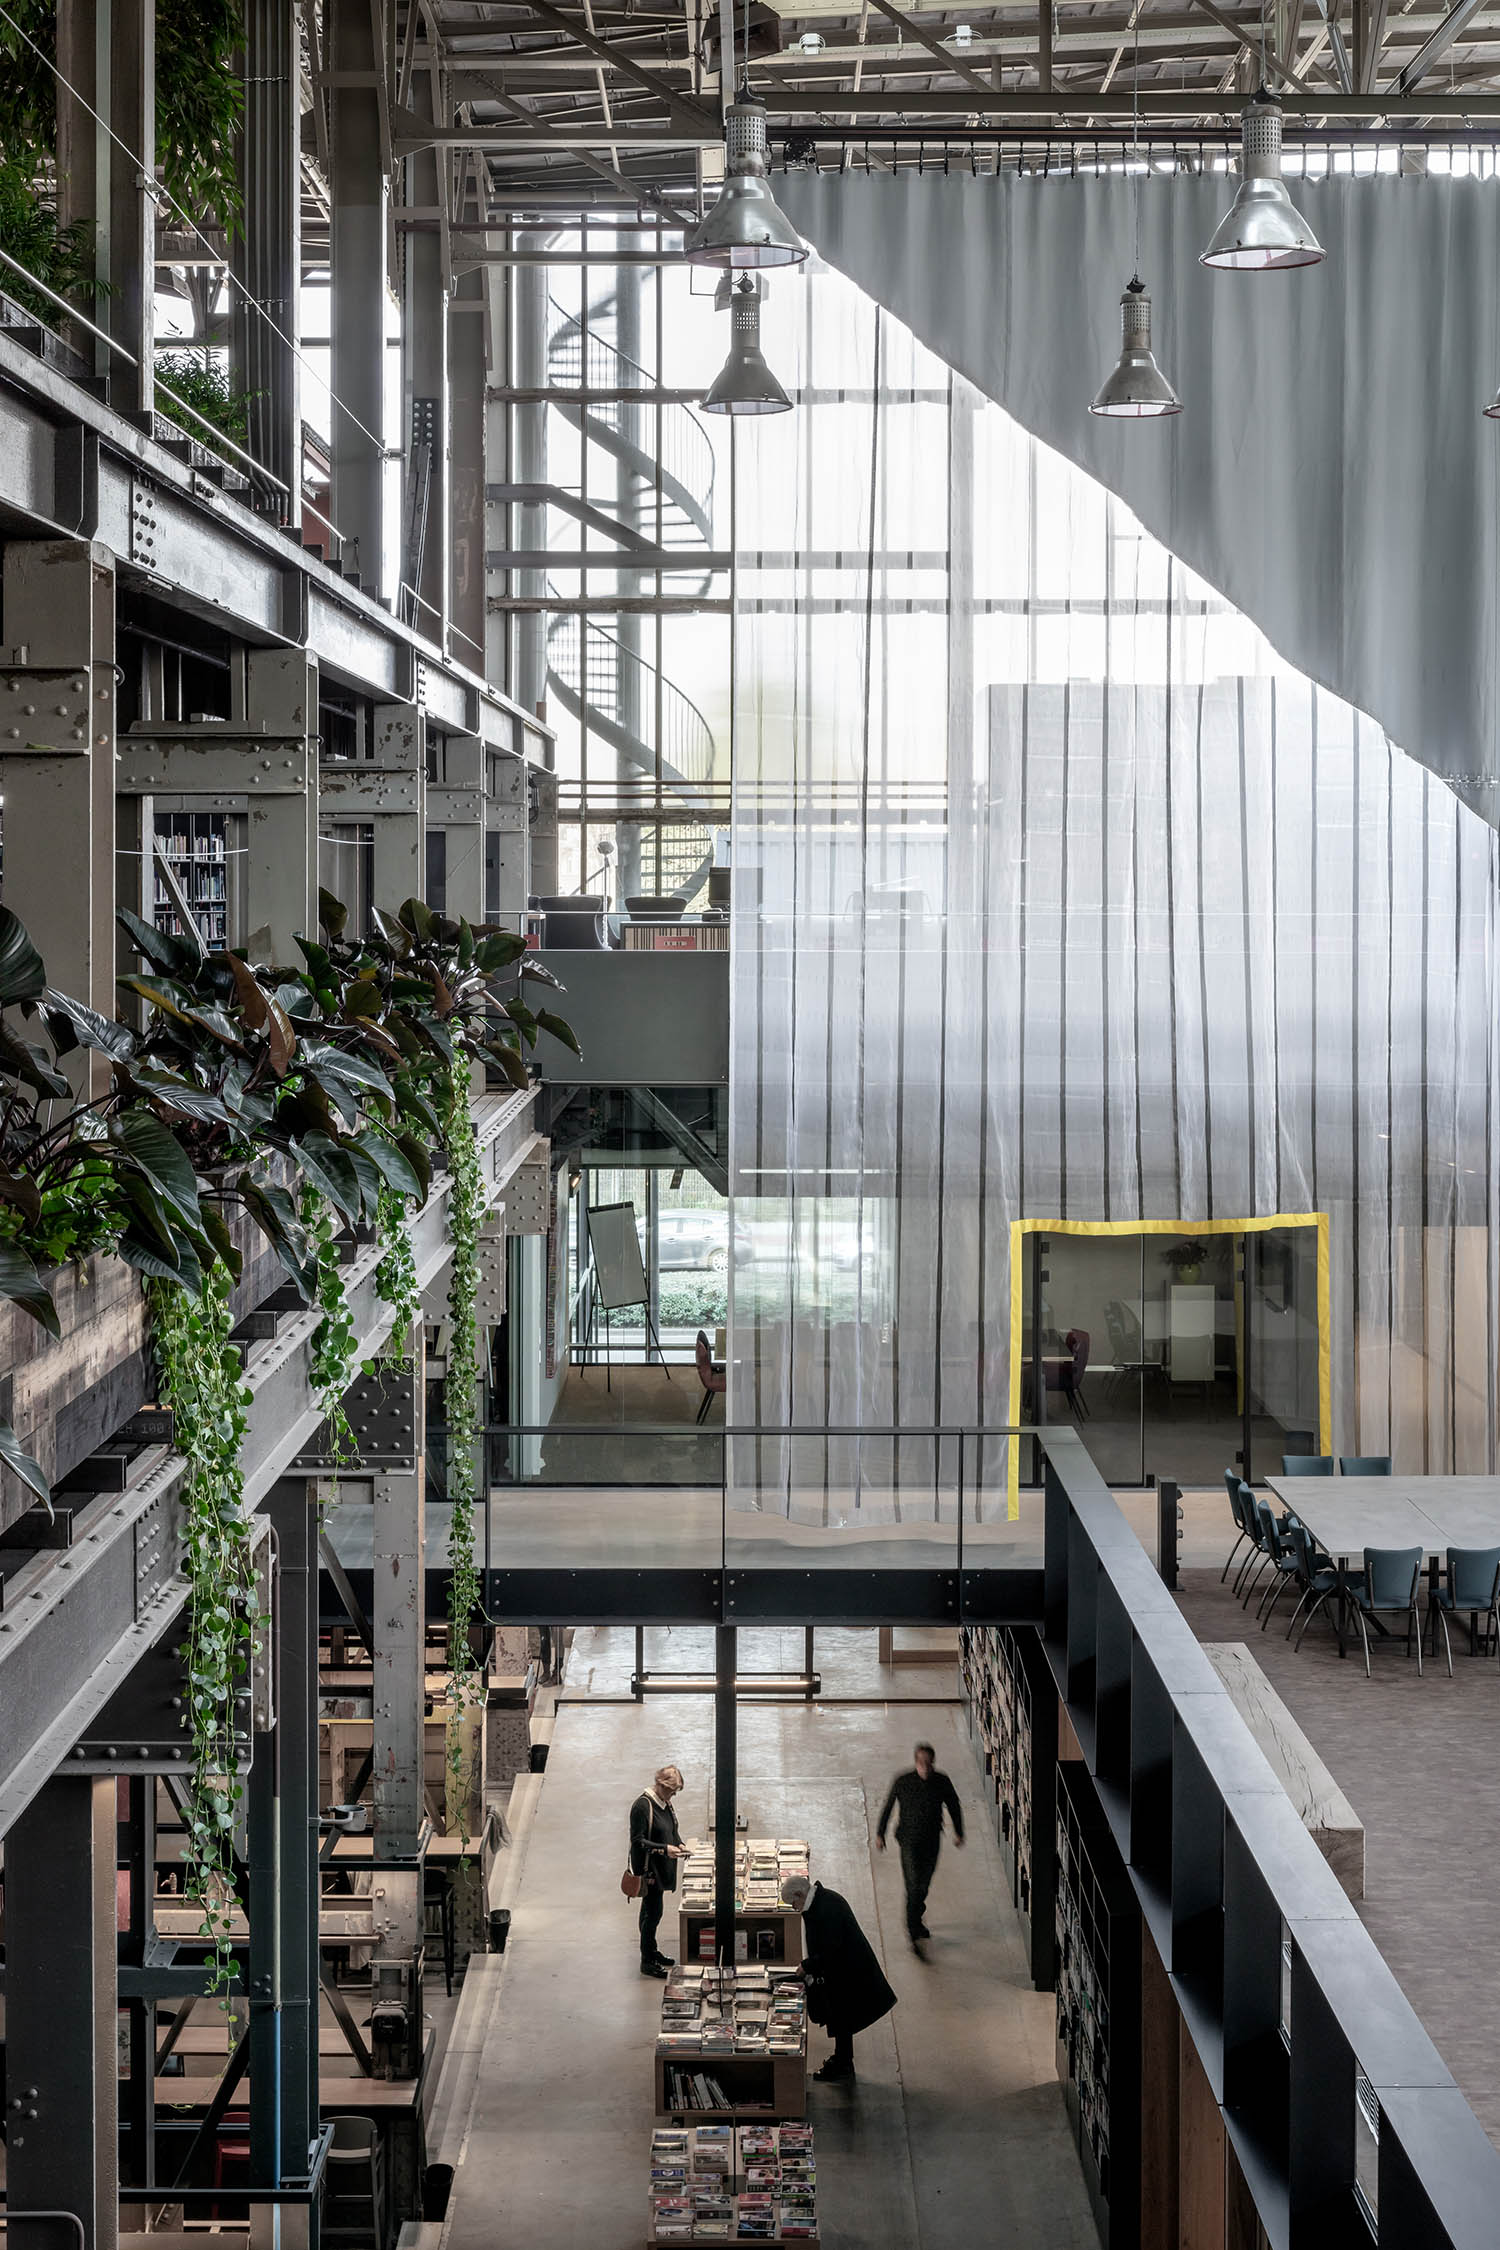 The huge movable curtains allow the spaces to have different configurations and to be flexible. Stijn Bollaert